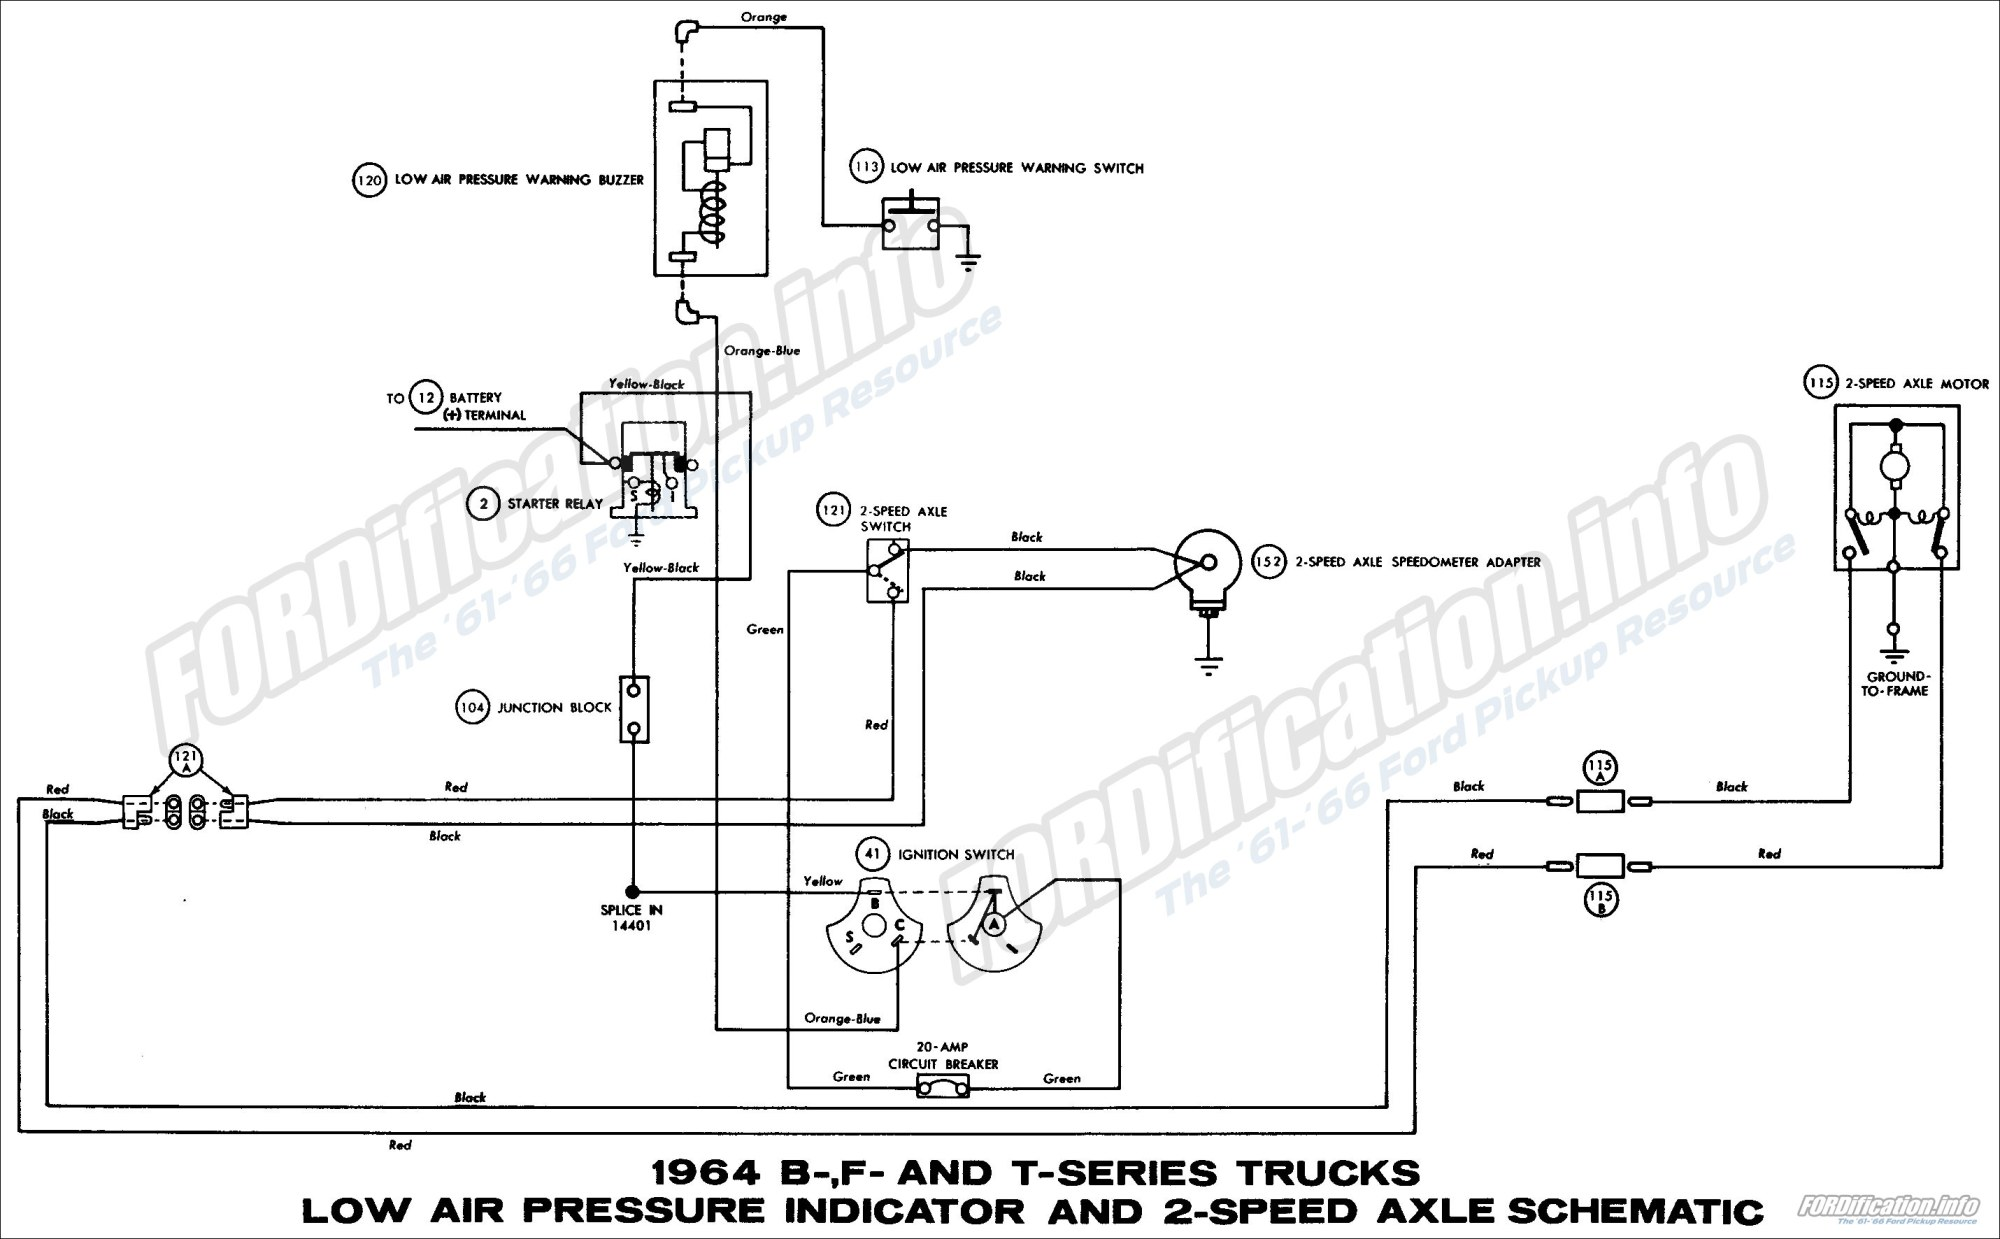 hight resolution of 1964 ford truck wiring diagrams fordification info the 61 66 transmatic transmission schematic diagram of 1964 ford b f and t series trucks part 1